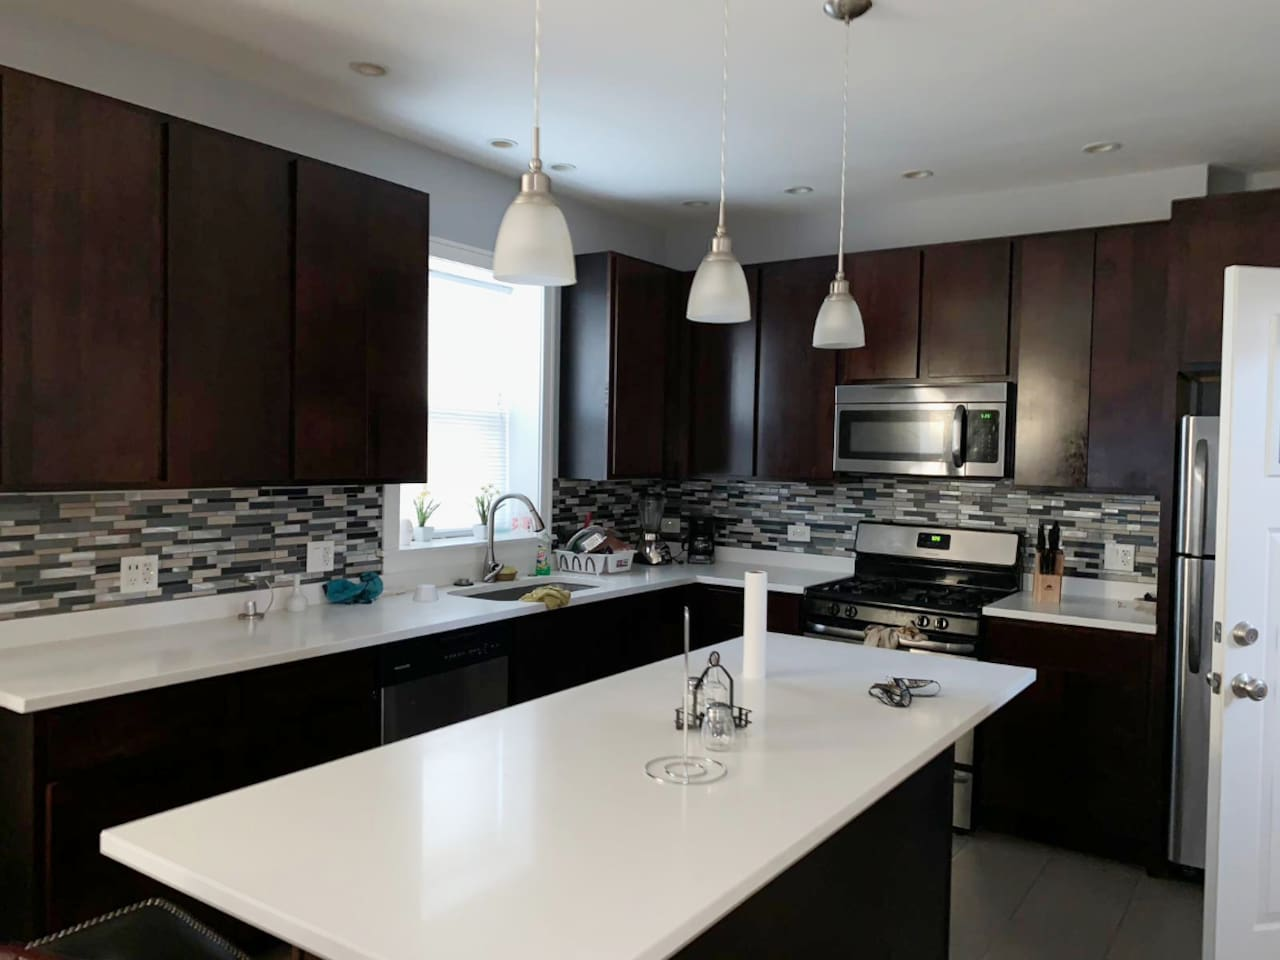 This Kitchen is one flight above the Private Guest Suite level. This Kitchen is SHARED w/ other guests. Please understand the listing doesn't come w/ 24hr maid service, please respect your other guests by cleaning after yourself in the shared areas.